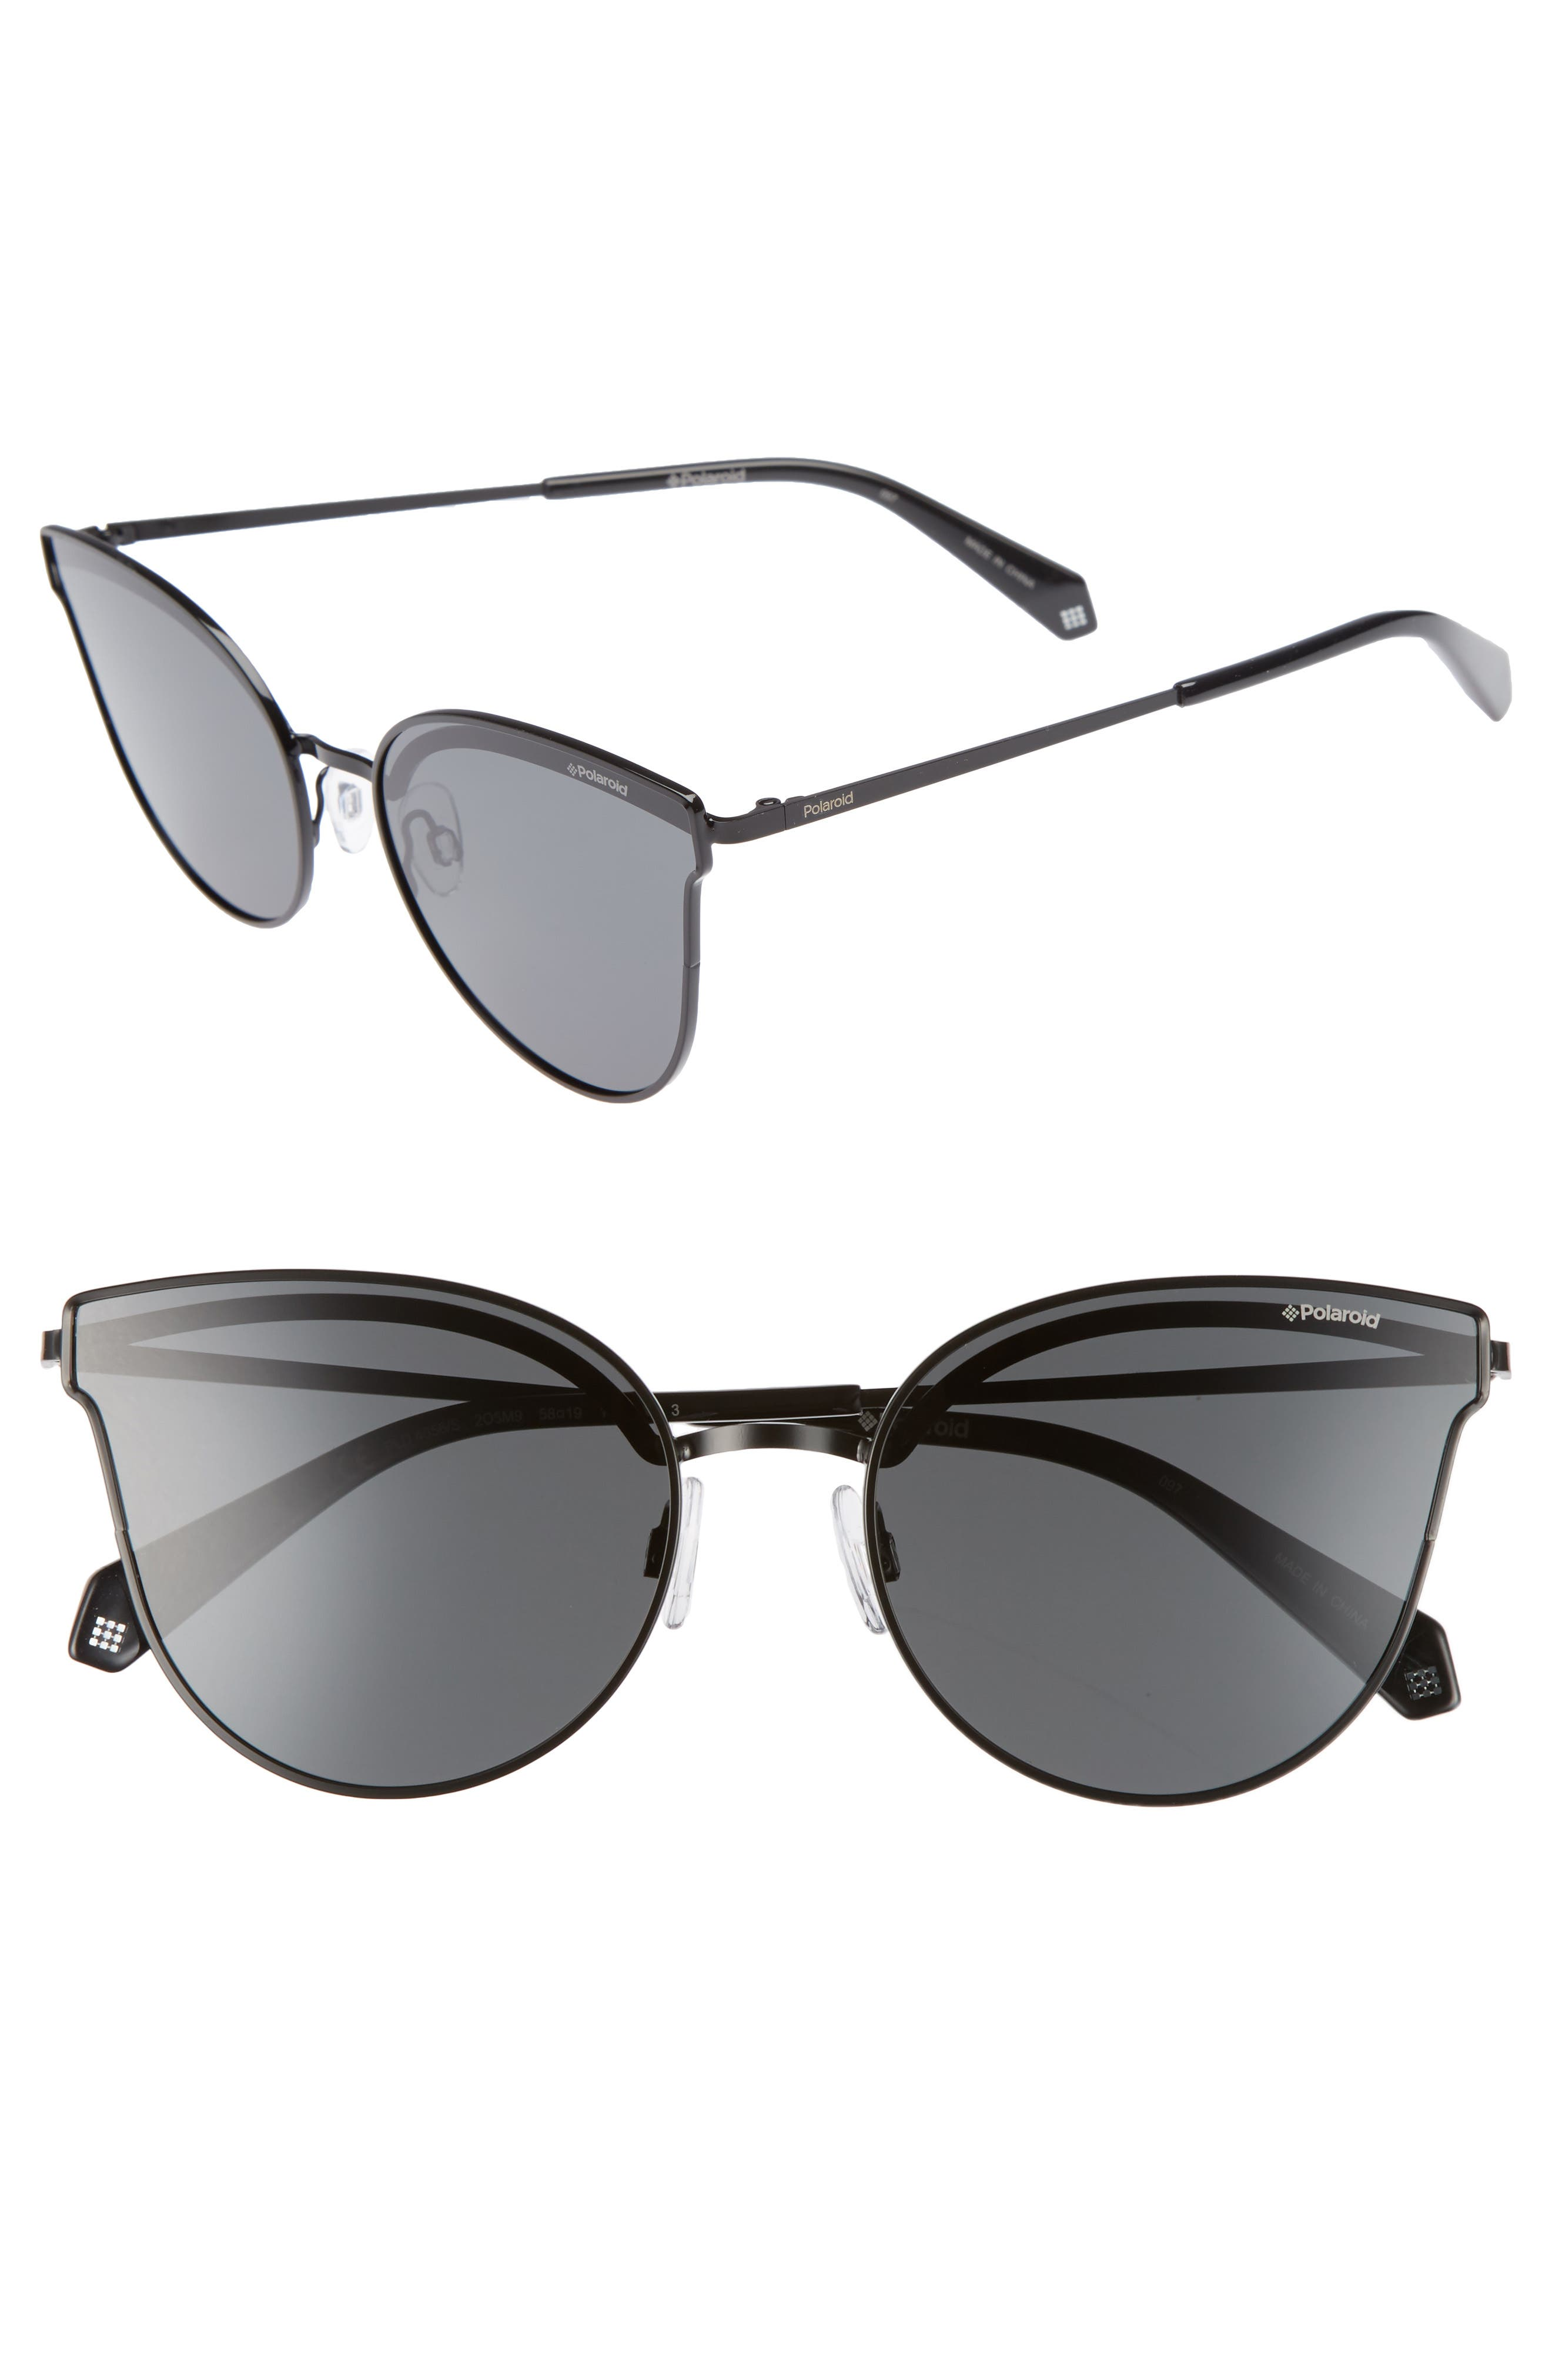 58mm Polarized Butterfly Sunglasses,                         Main,                         color, 001